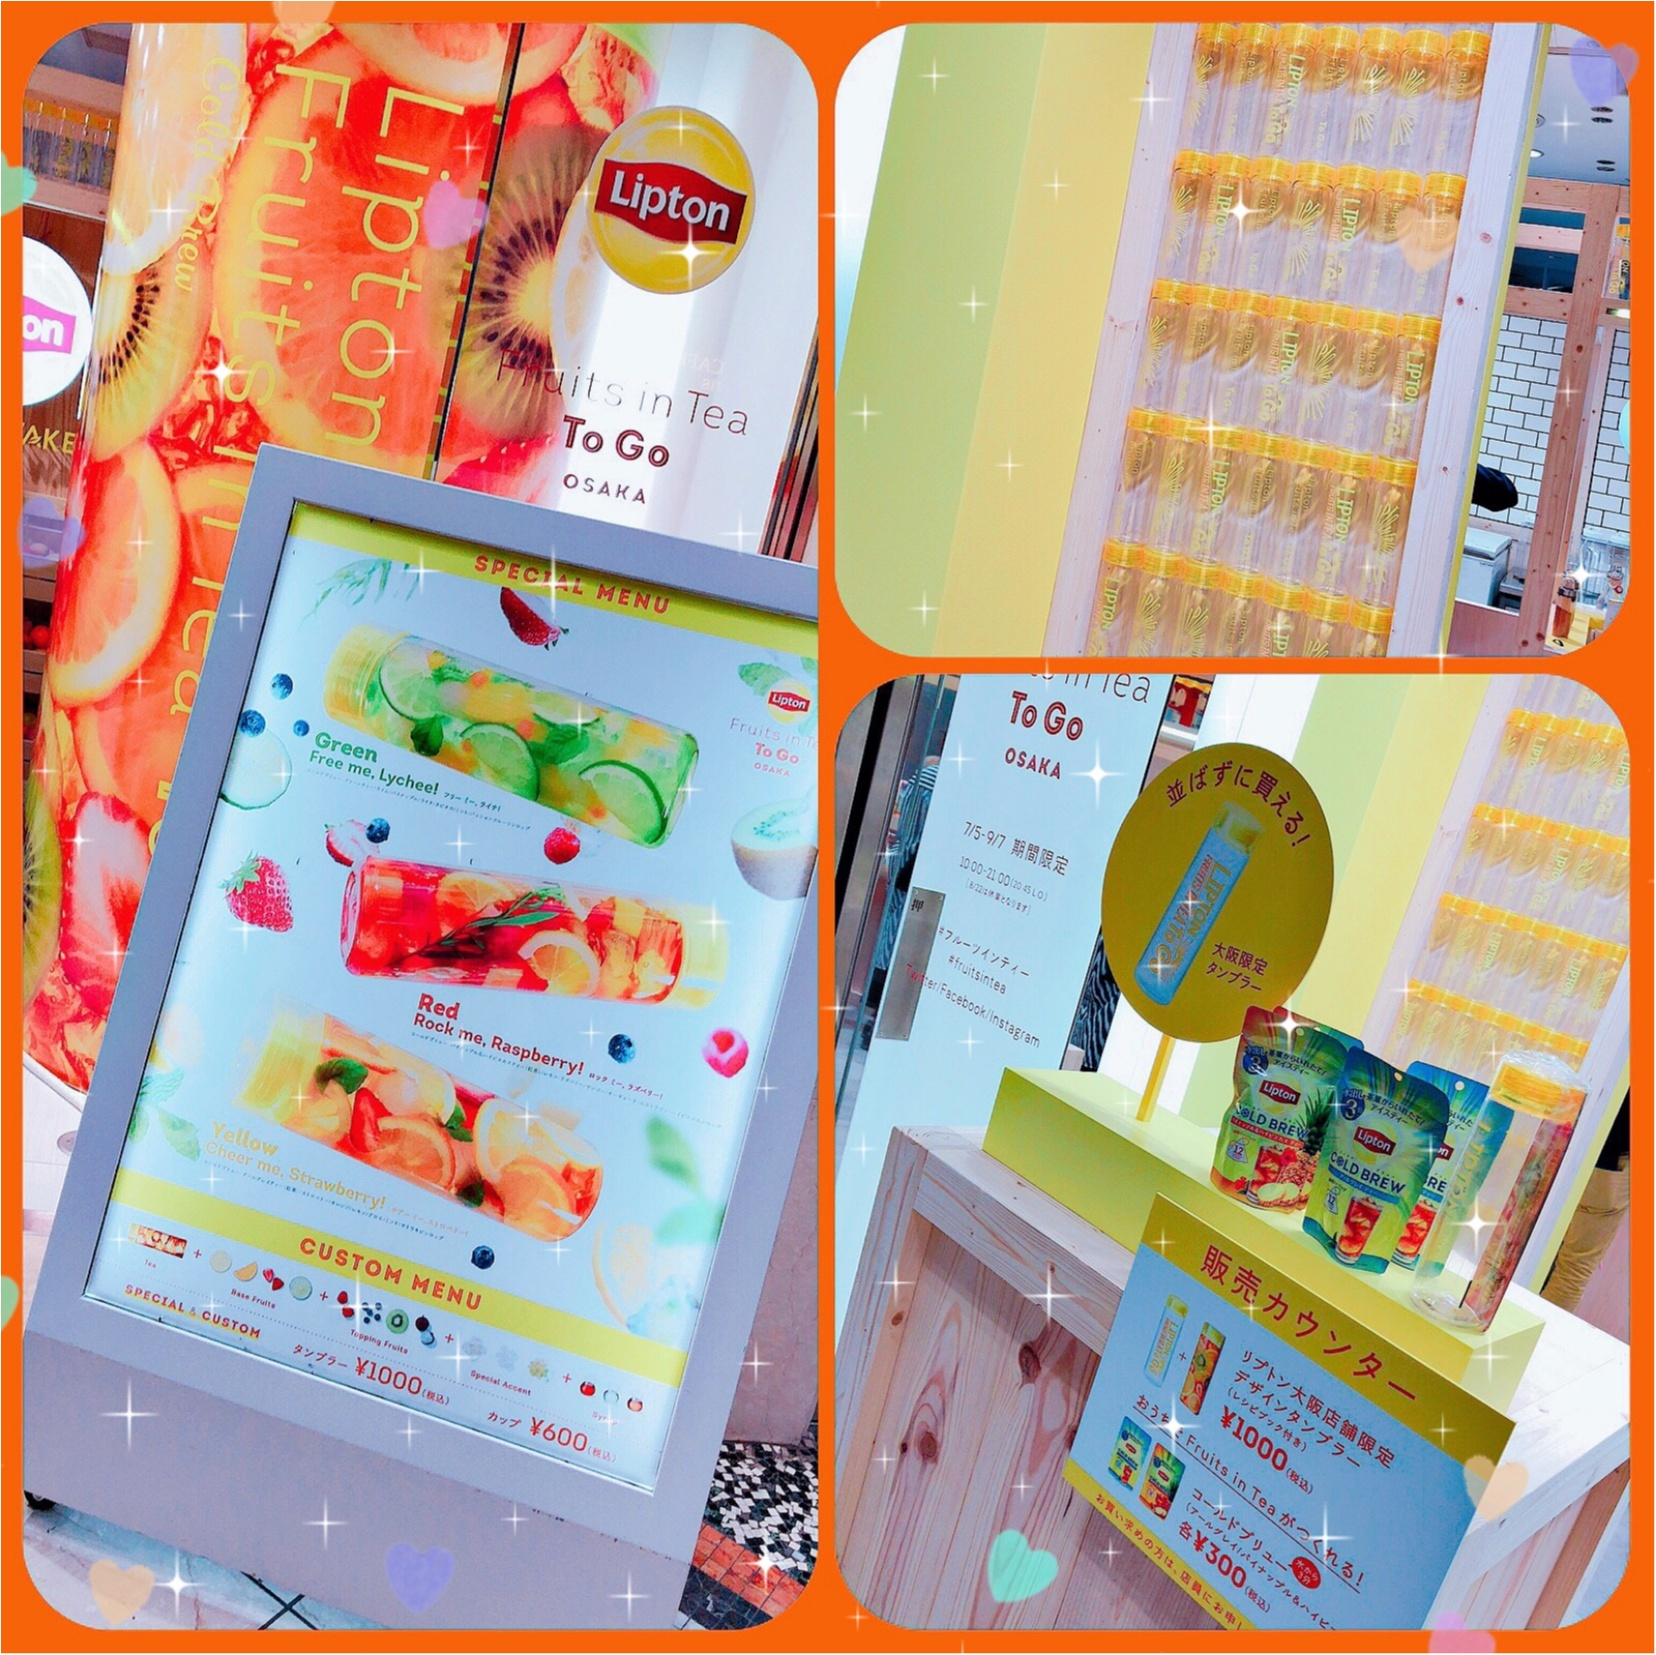 café & books bibliotheque フローズンフルーツフェア♡_3